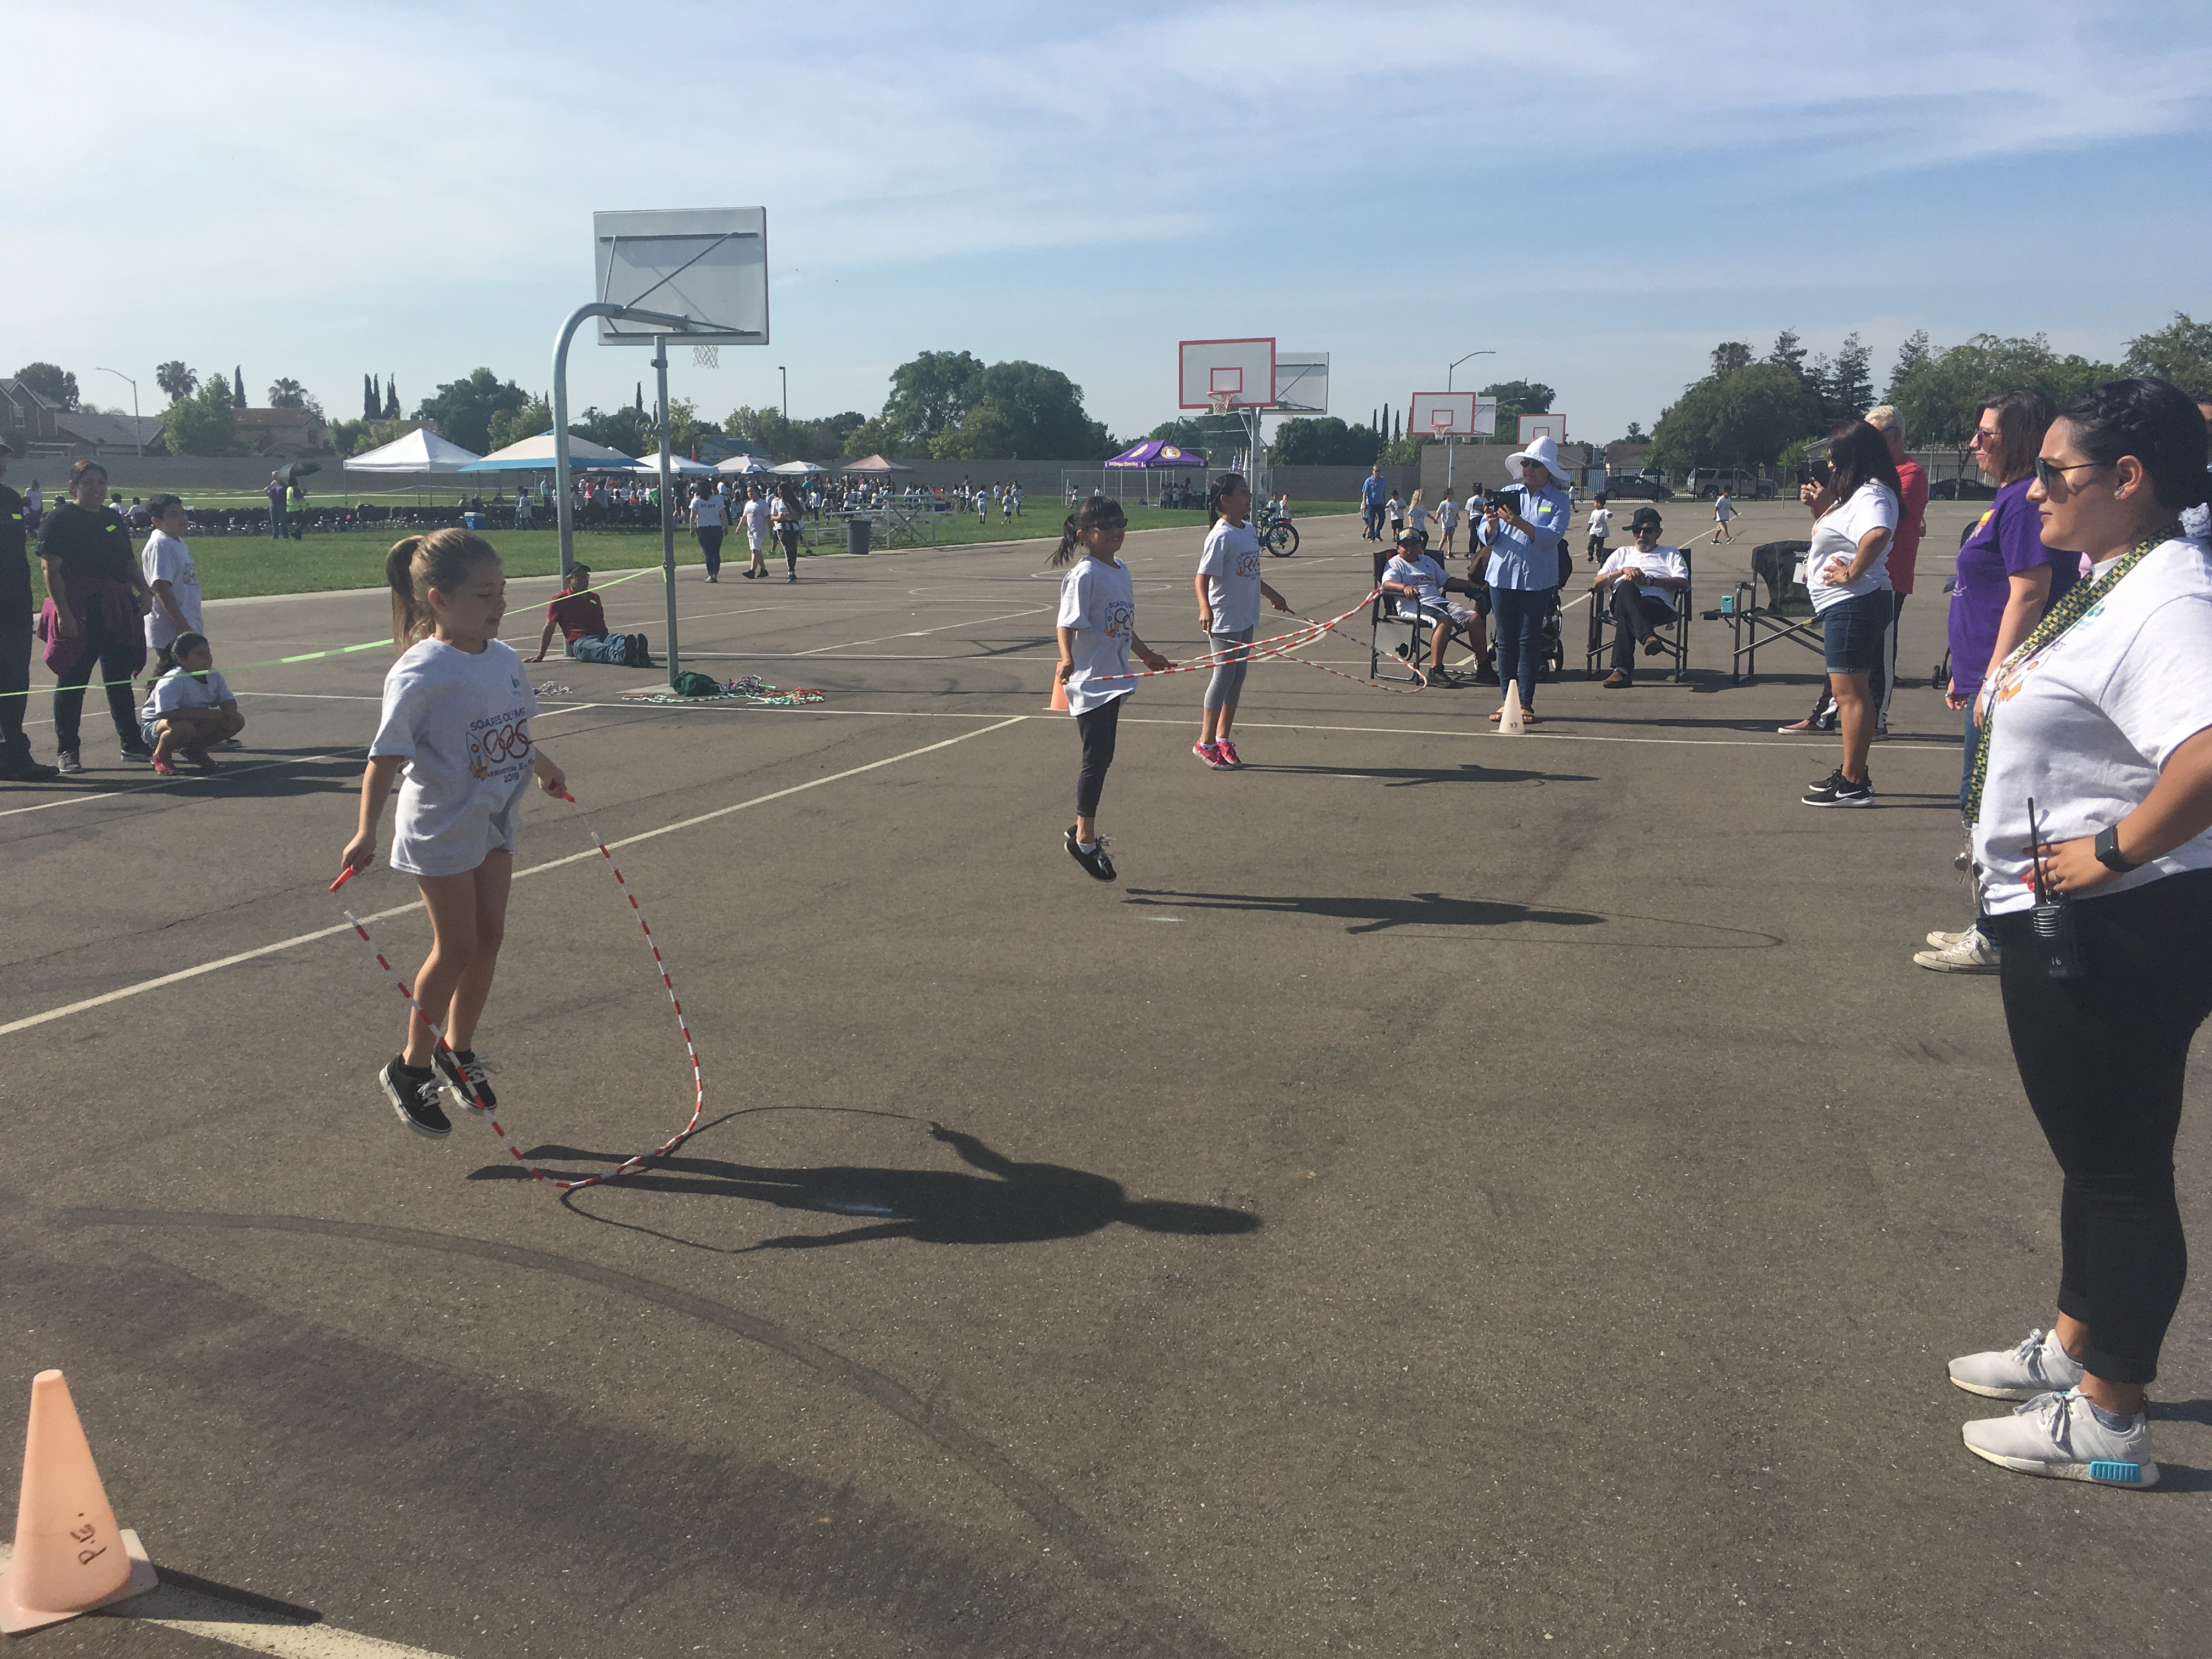 Photos of the School Olympics with the students and teachers participating